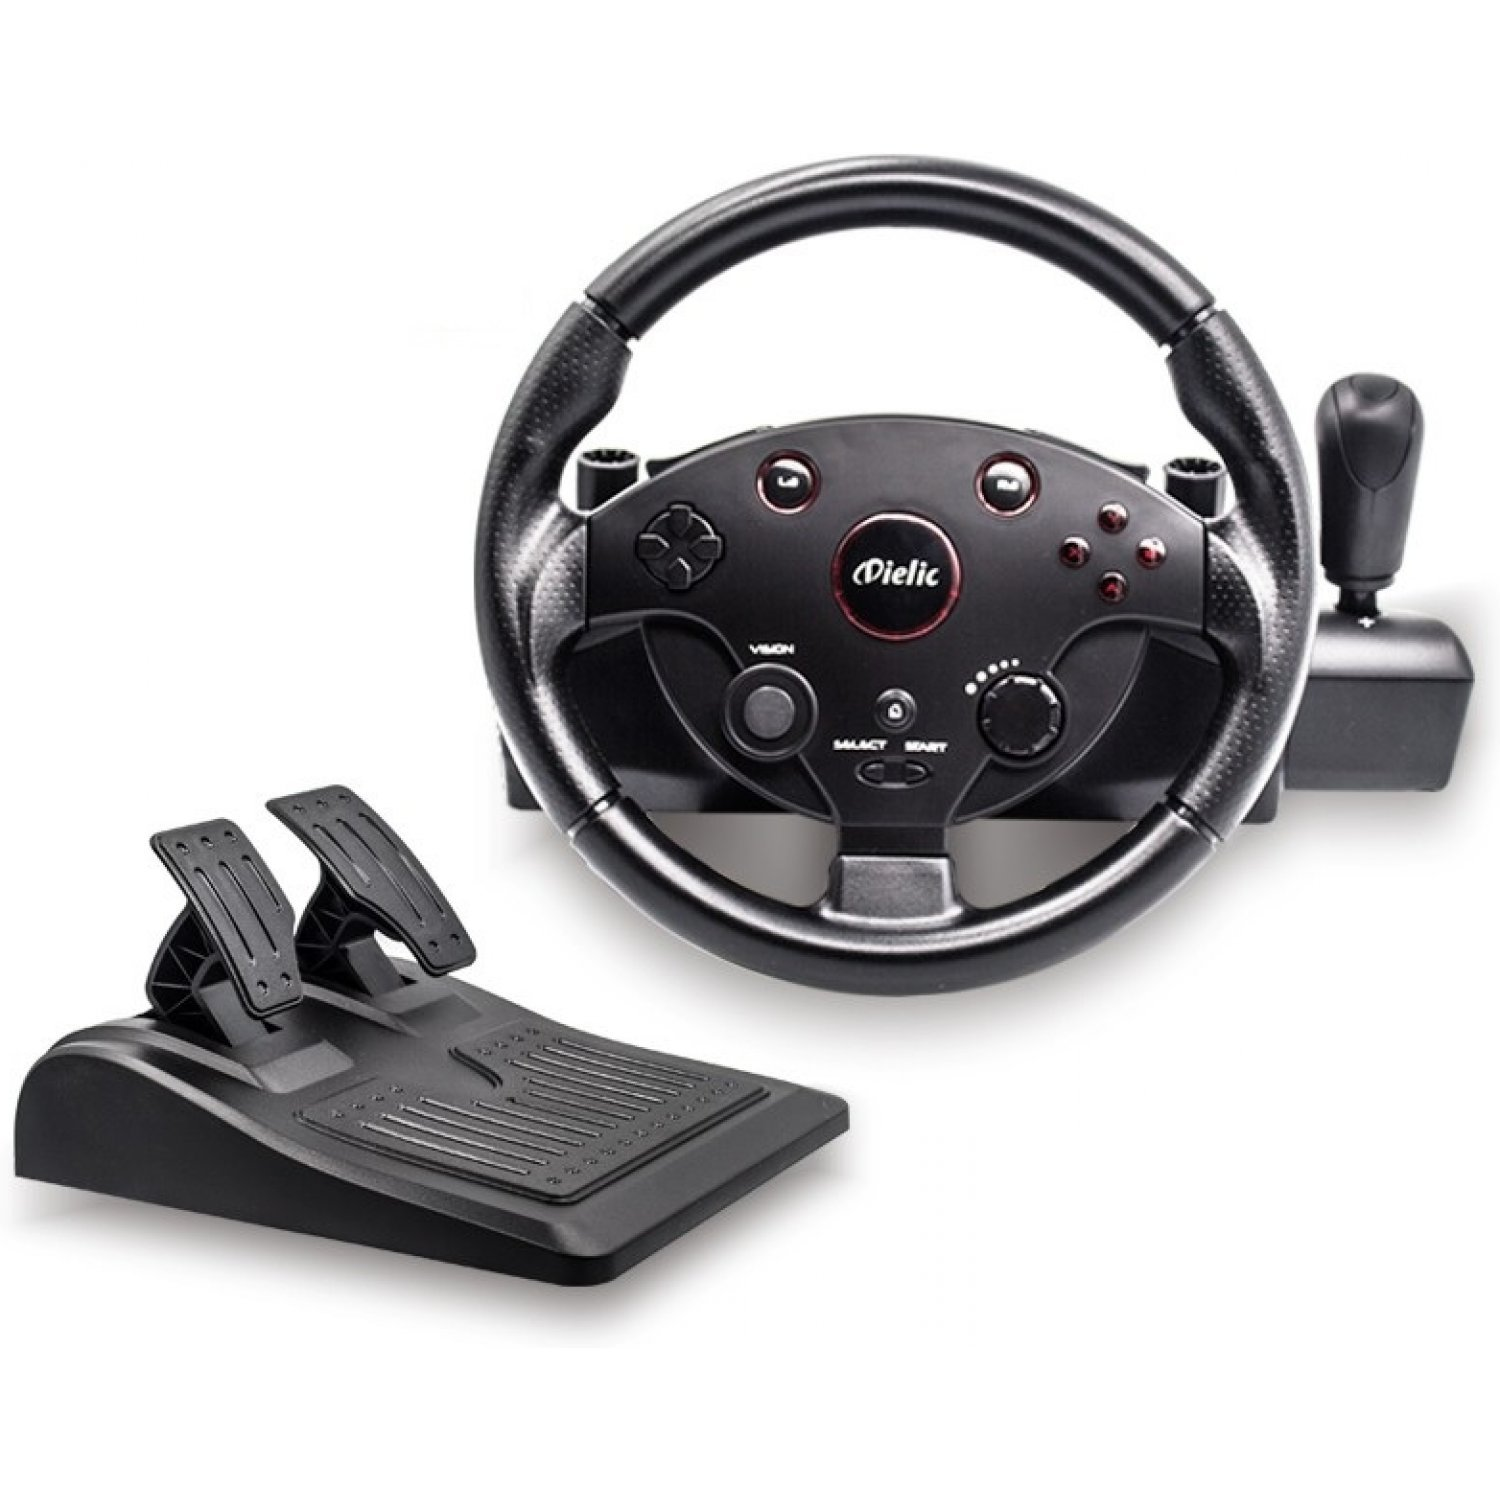 quint 5in1 racing wheel for ps4 ps3 pc xbox one xbox360. Black Bedroom Furniture Sets. Home Design Ideas